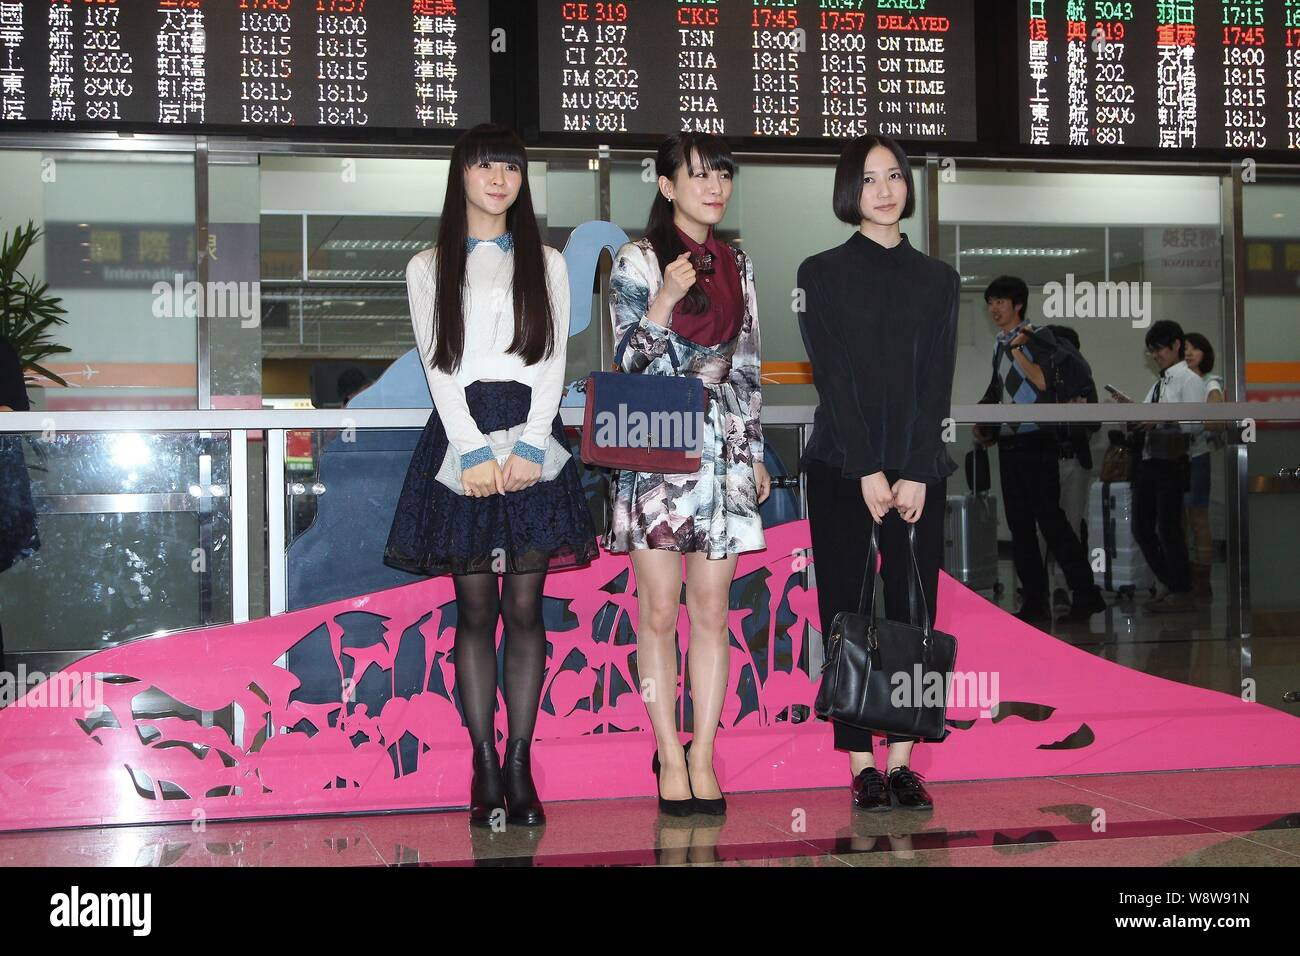 From left) Yuka Kashino, Ayaka Nishiwaki and Ayano Omoto of